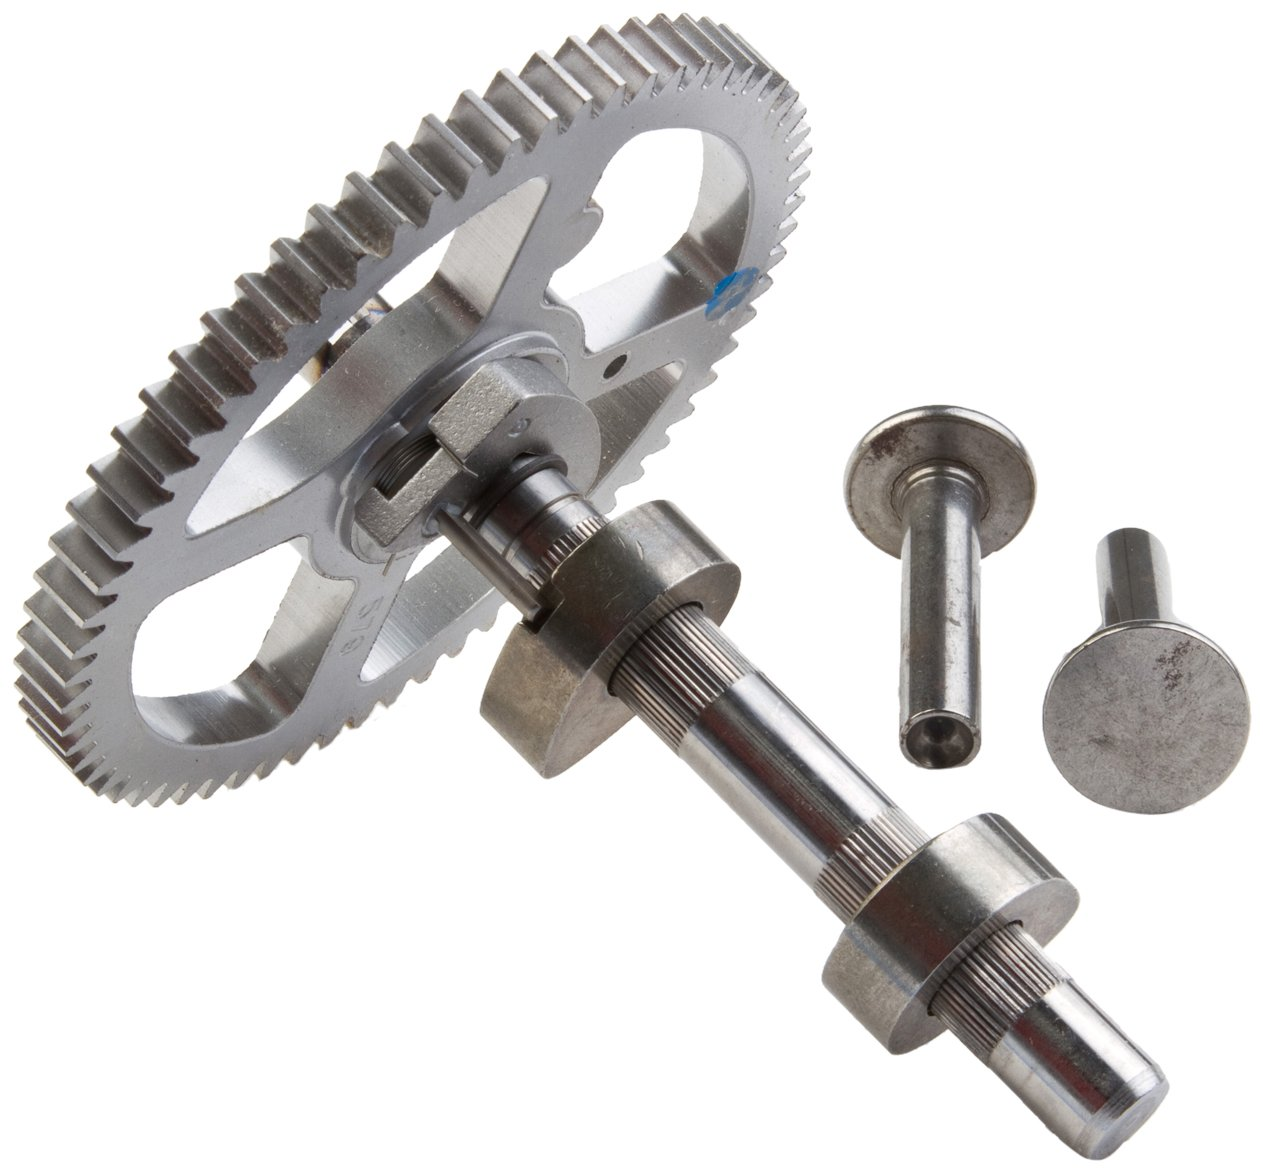 Briggs & Stratton 790400 Camshaft Replacement for Models 698492, 693450, 692421, 790392 and 699024